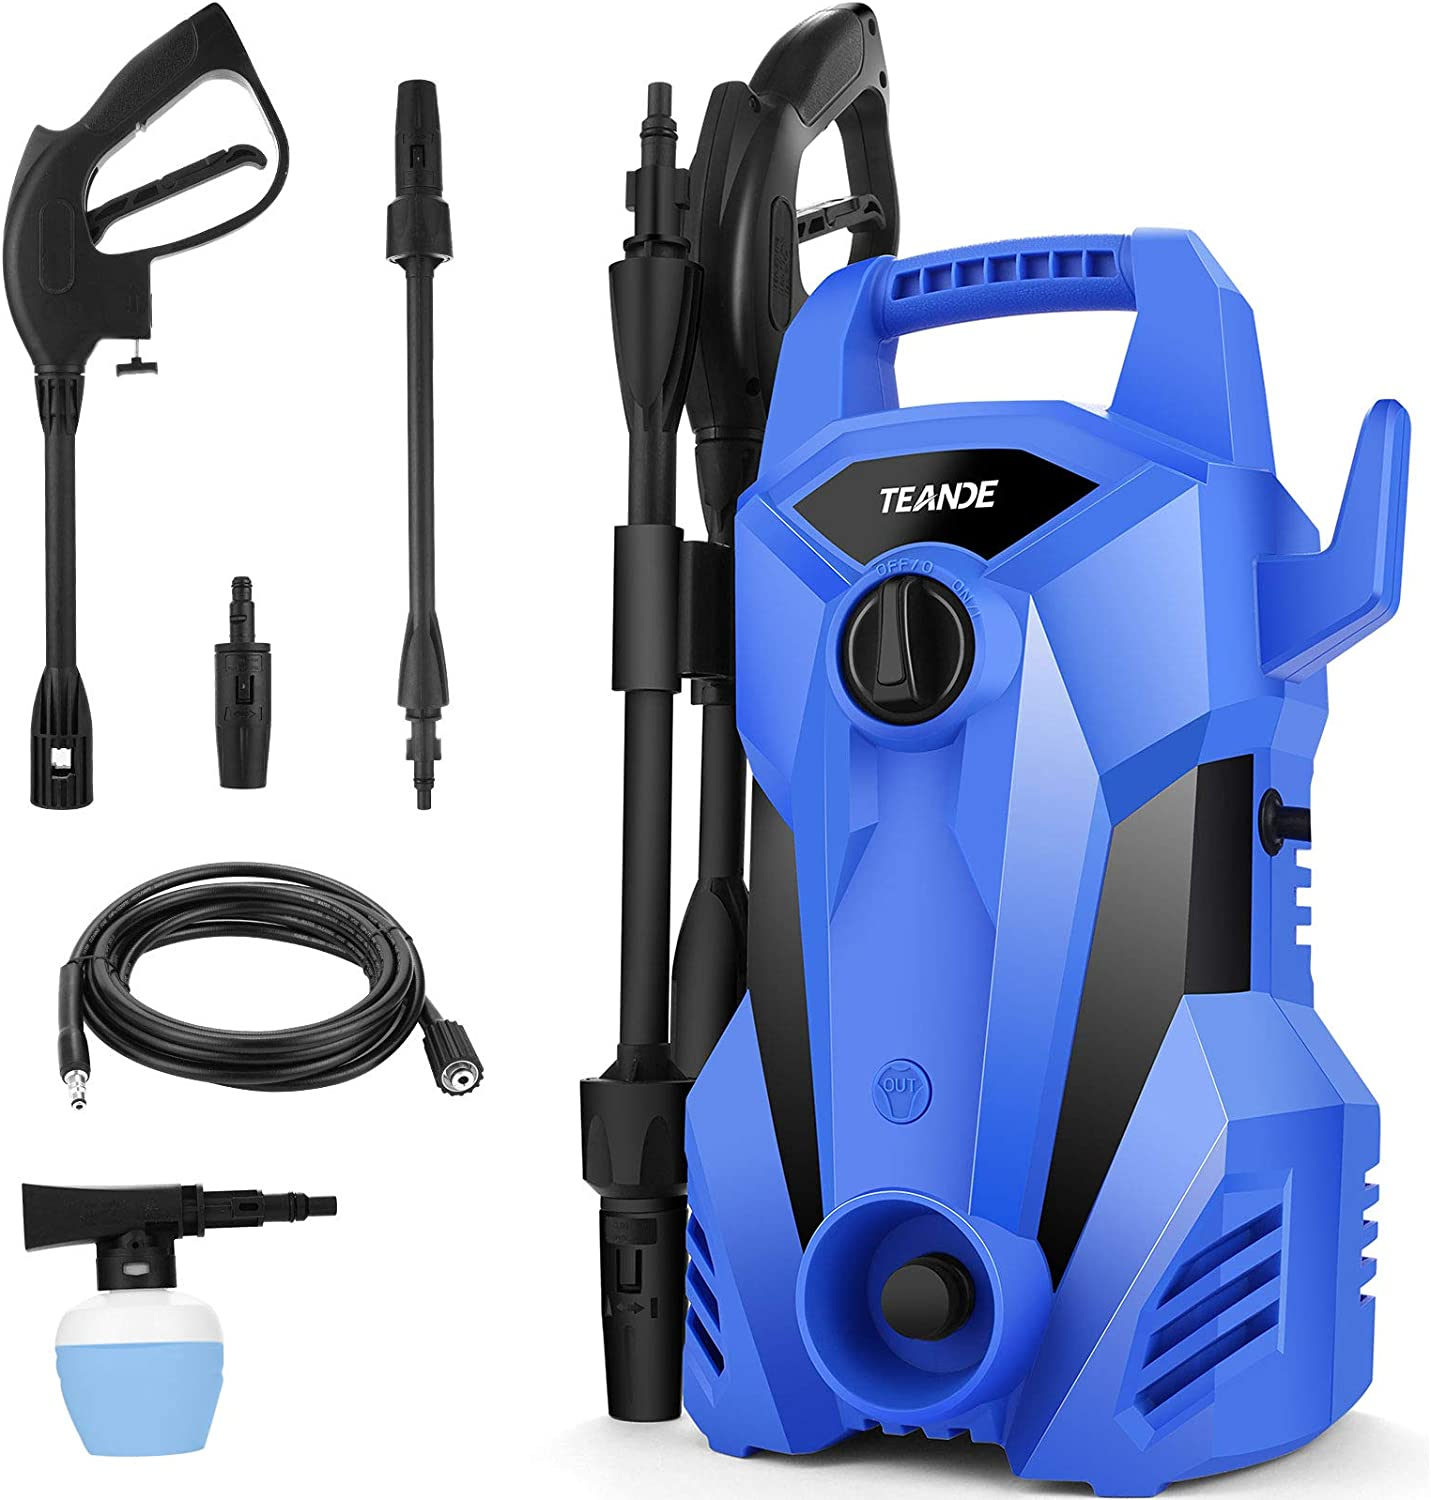 Genuine Free Shipping Pressure Washer TEANDE 2300 Deluxe P Electric PSI Max